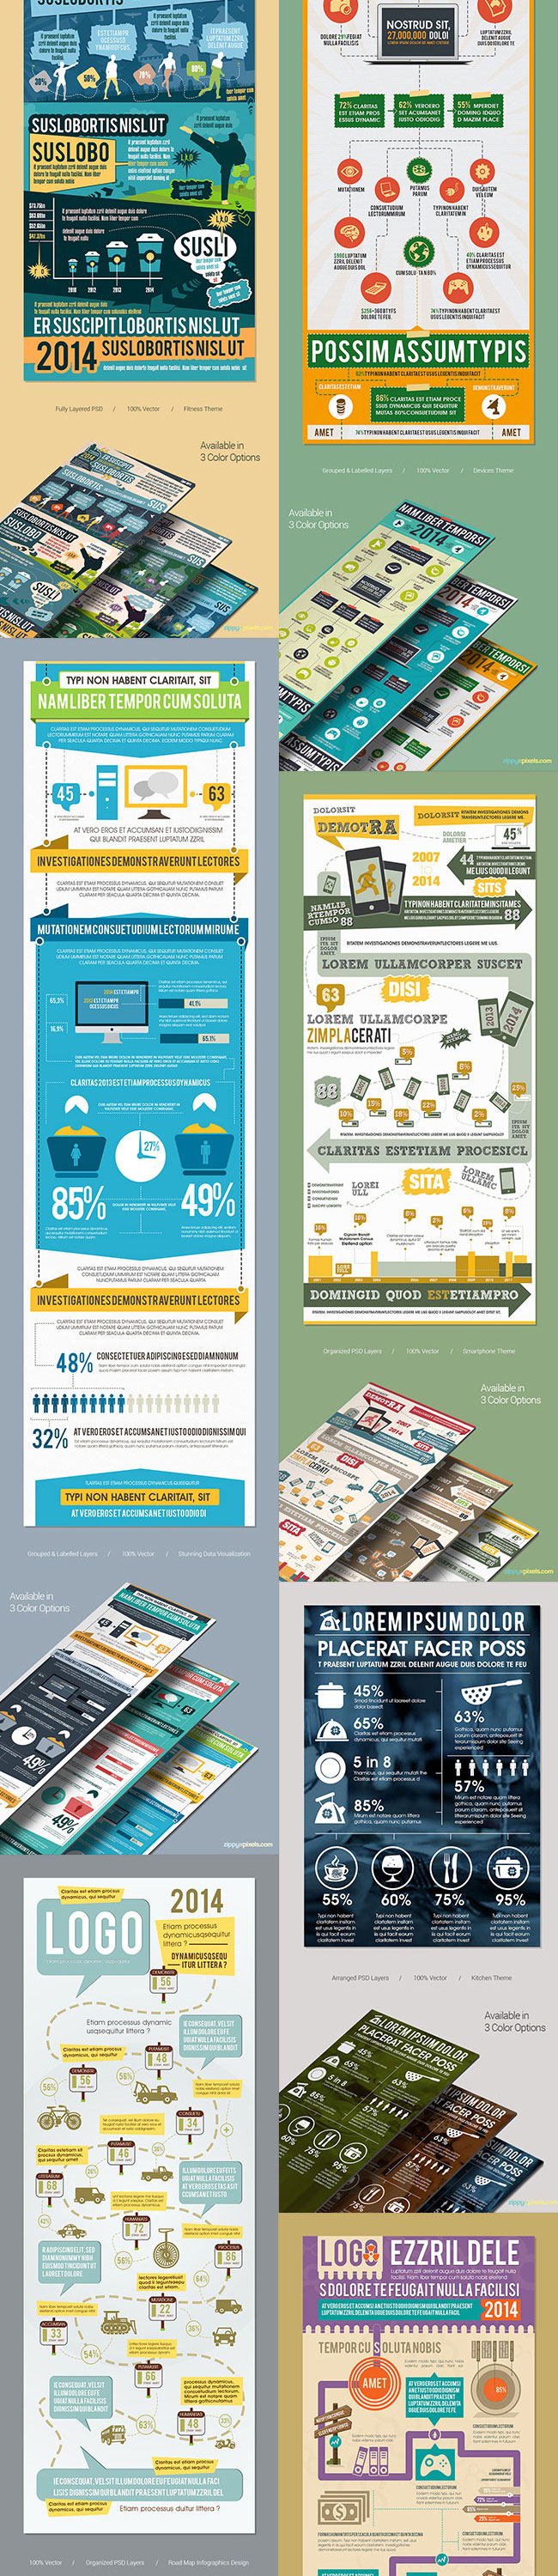 Mega Bundle of 105 Incredible Infographic Templates - only $27 ...